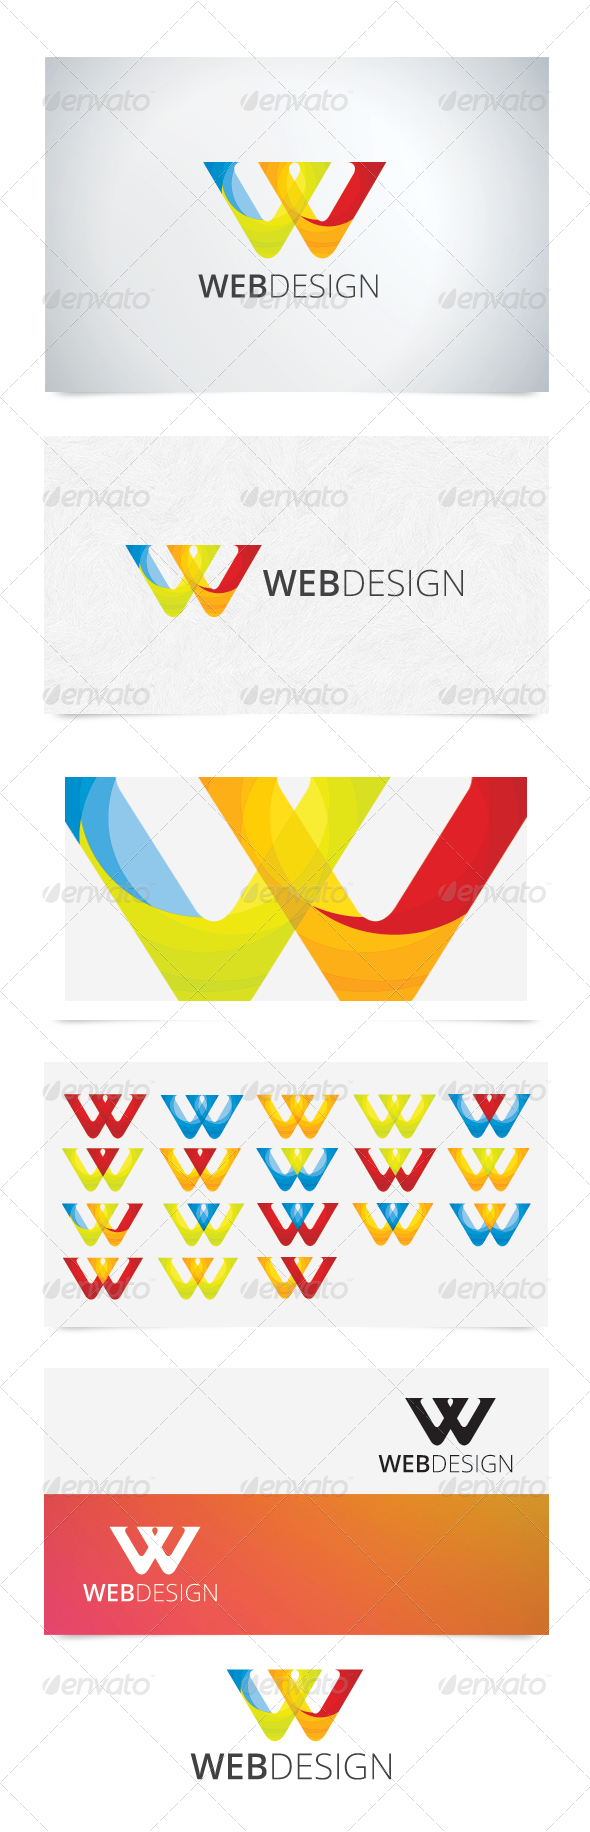 W Character Logo